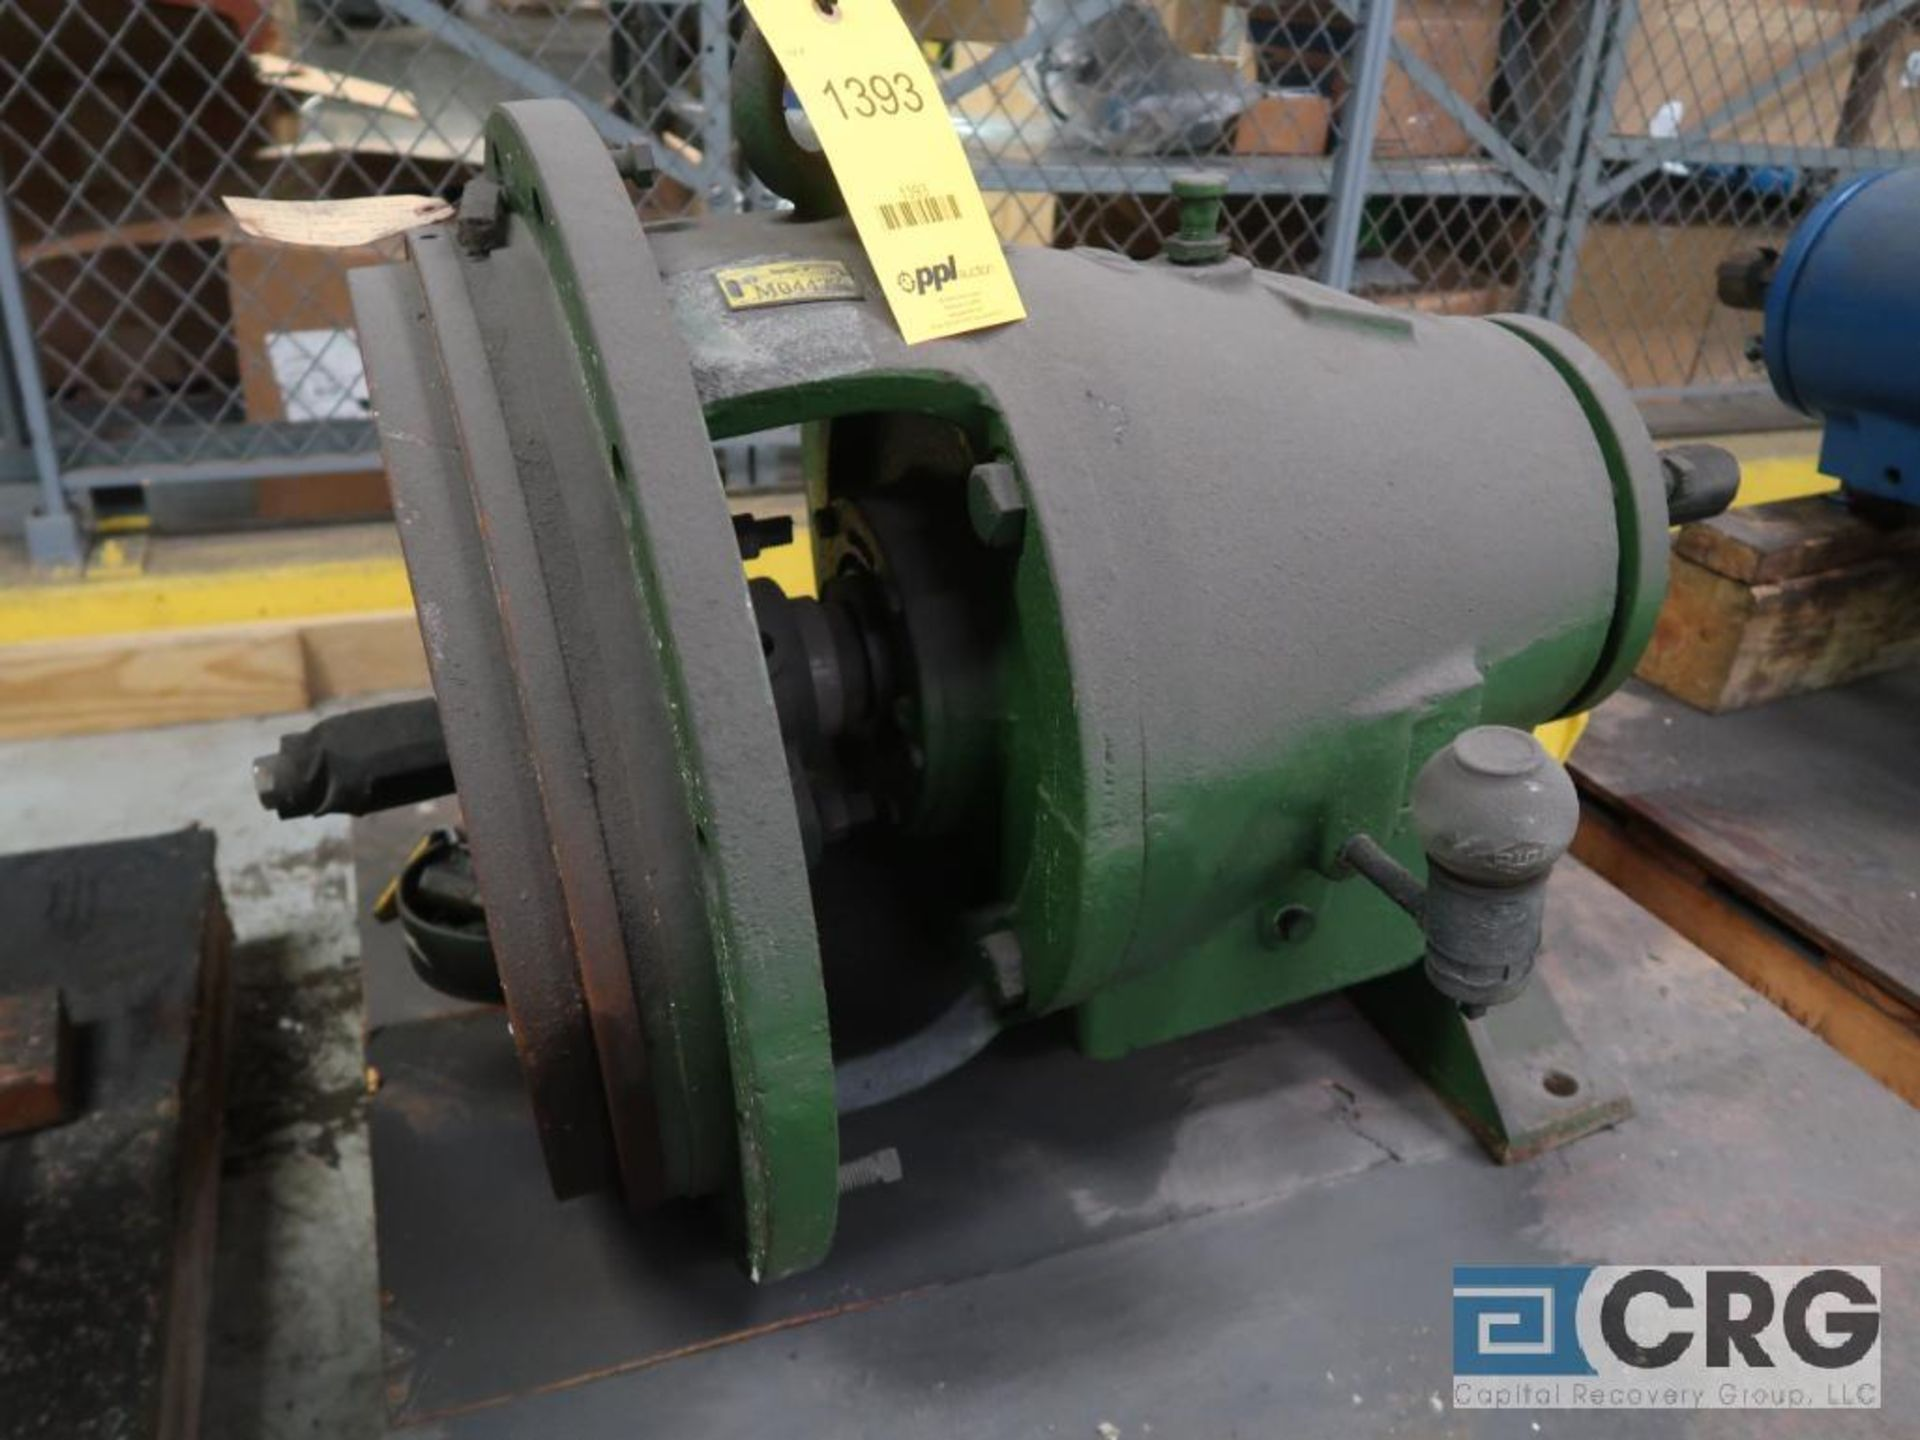 Goulds 3175 18 in. pump (Basement Stores)